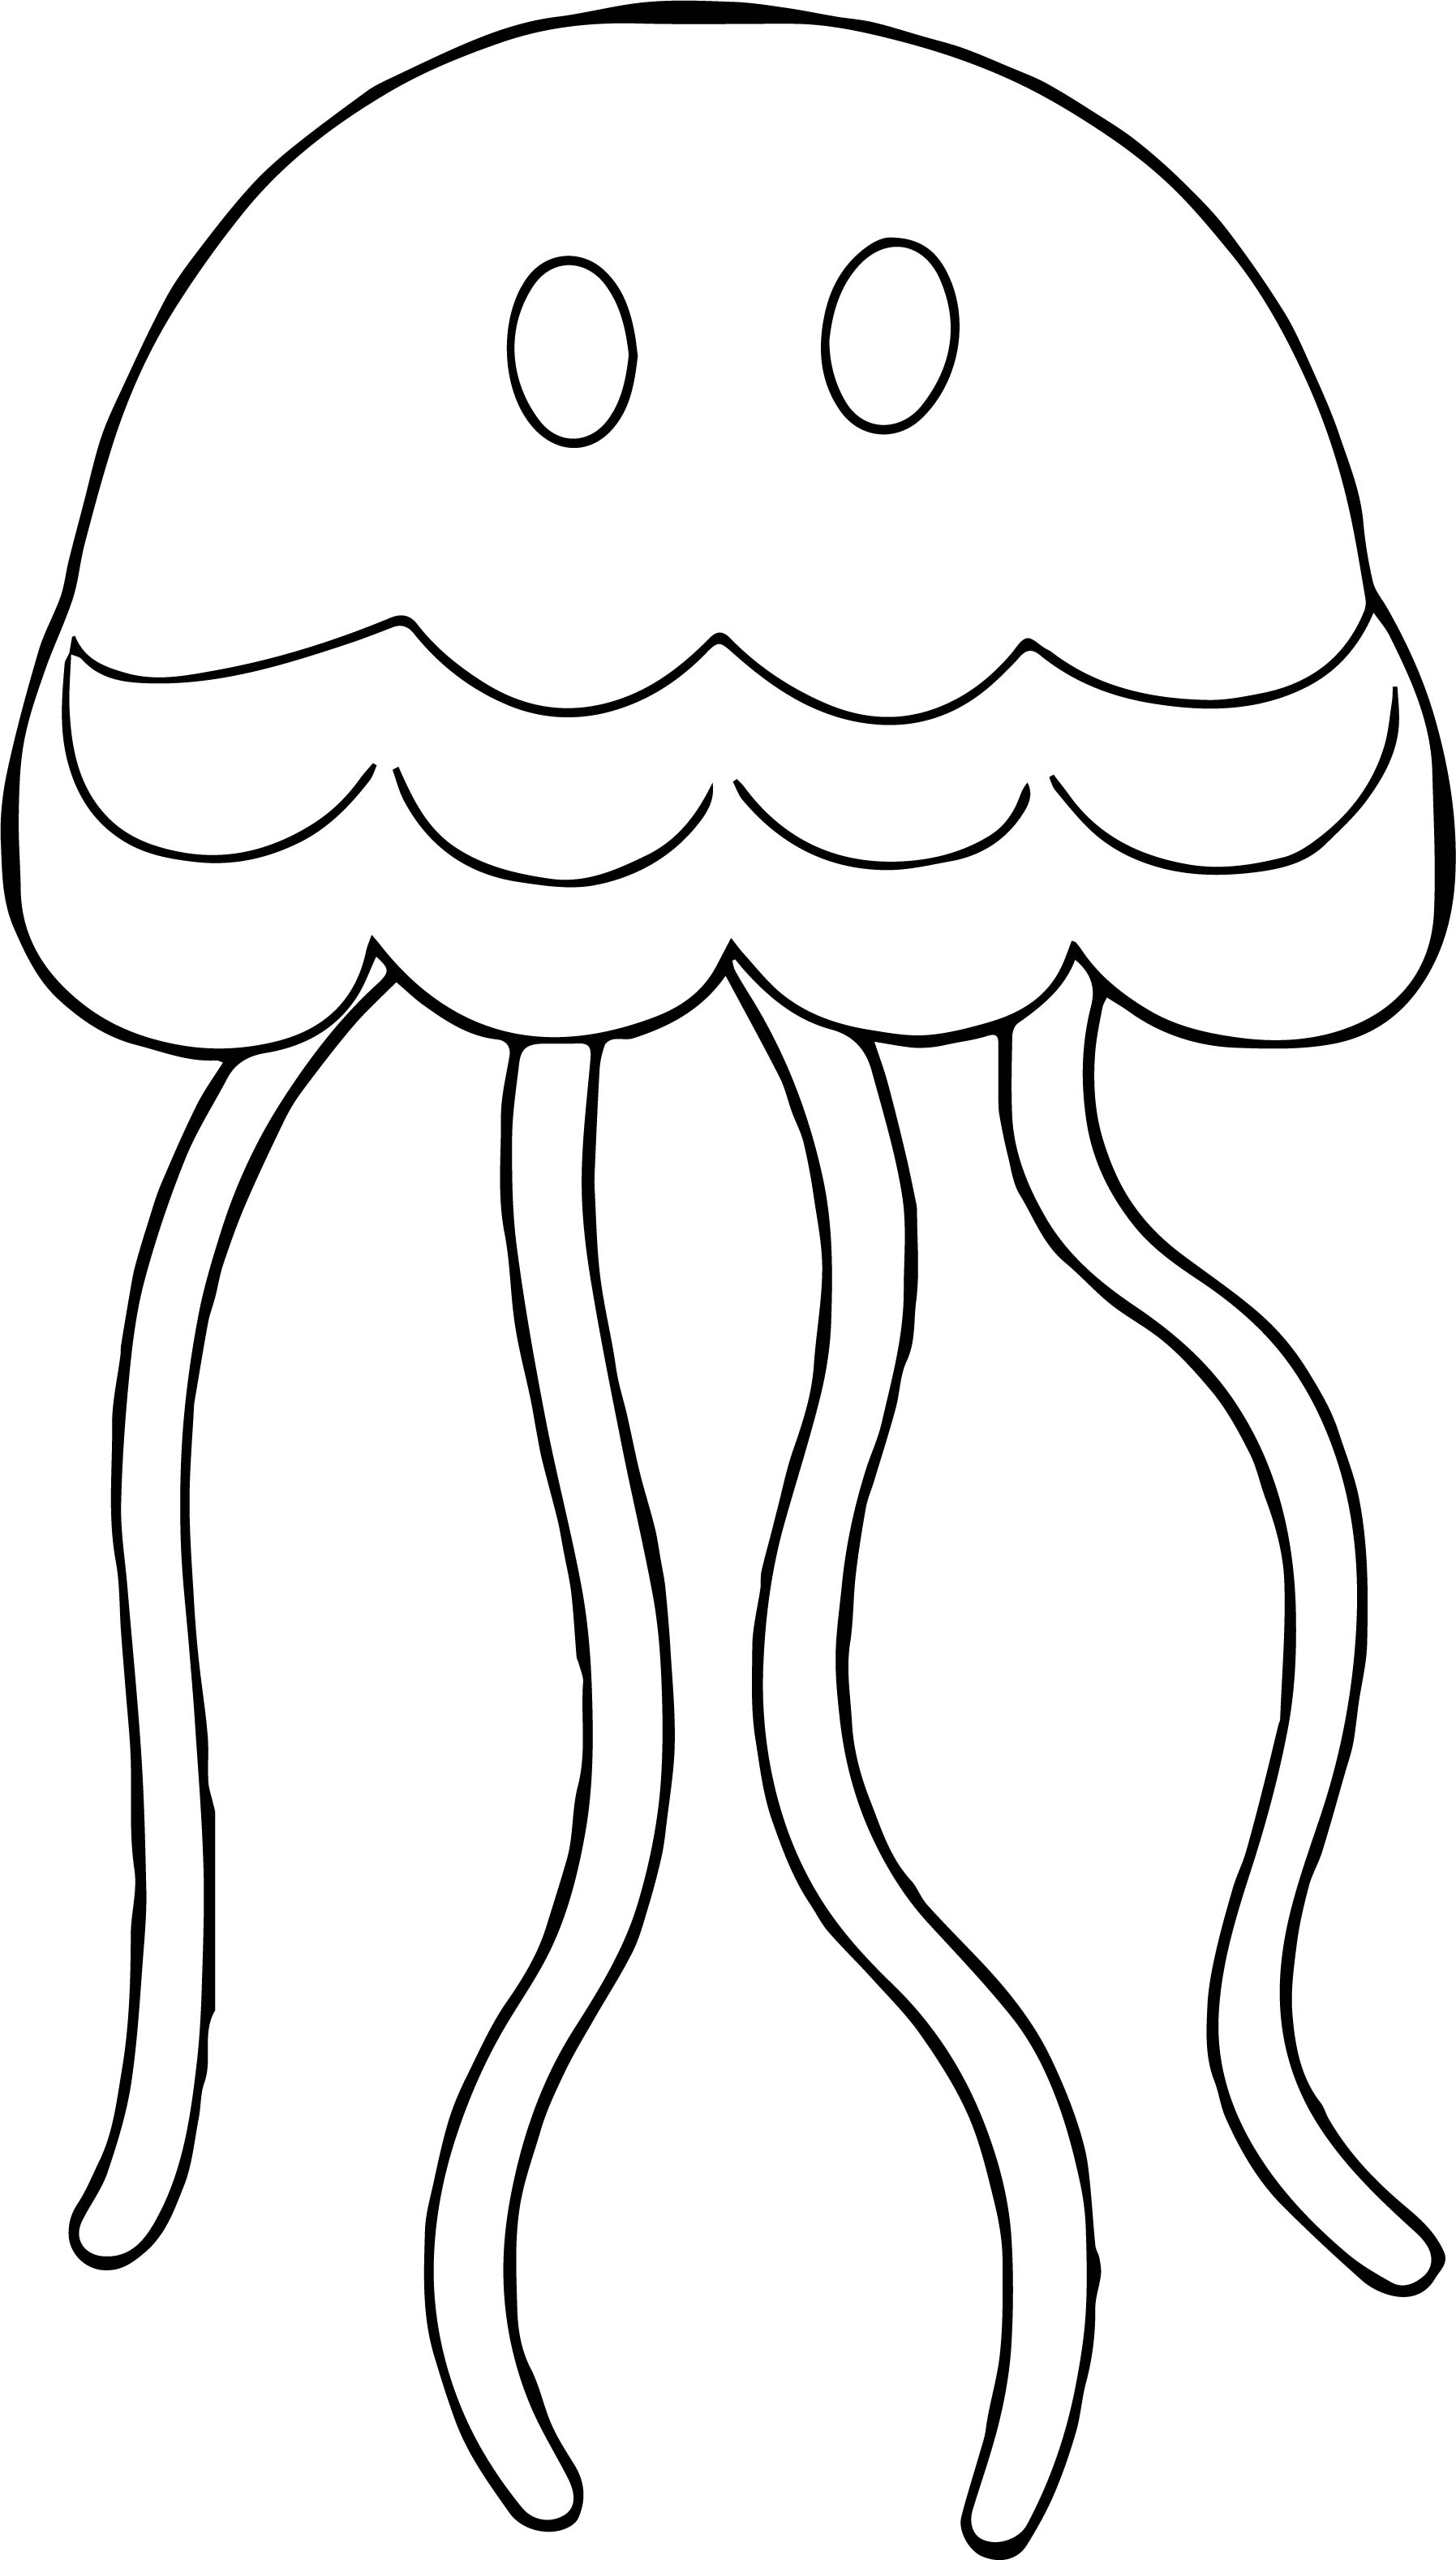 Colorful Animal Jellyfish Geometry Coloring Page